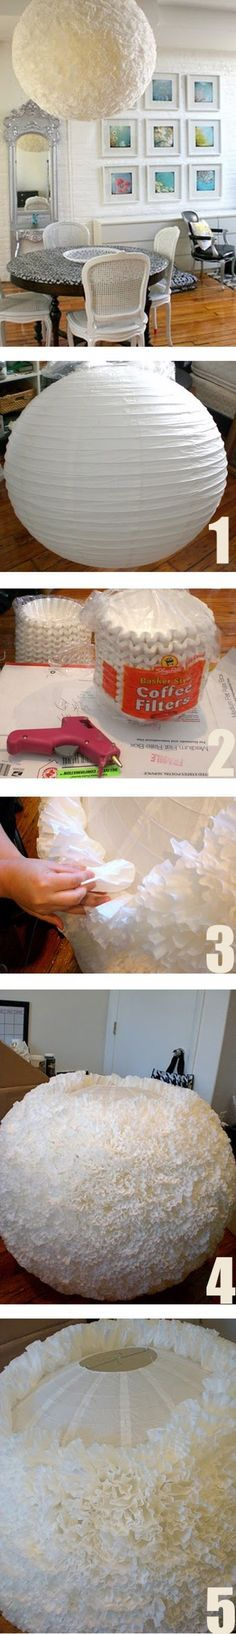 DIY Lampenkap met een IKEA lamp en koffiefilters. Door Samzxx-that is insanely amazing!!!